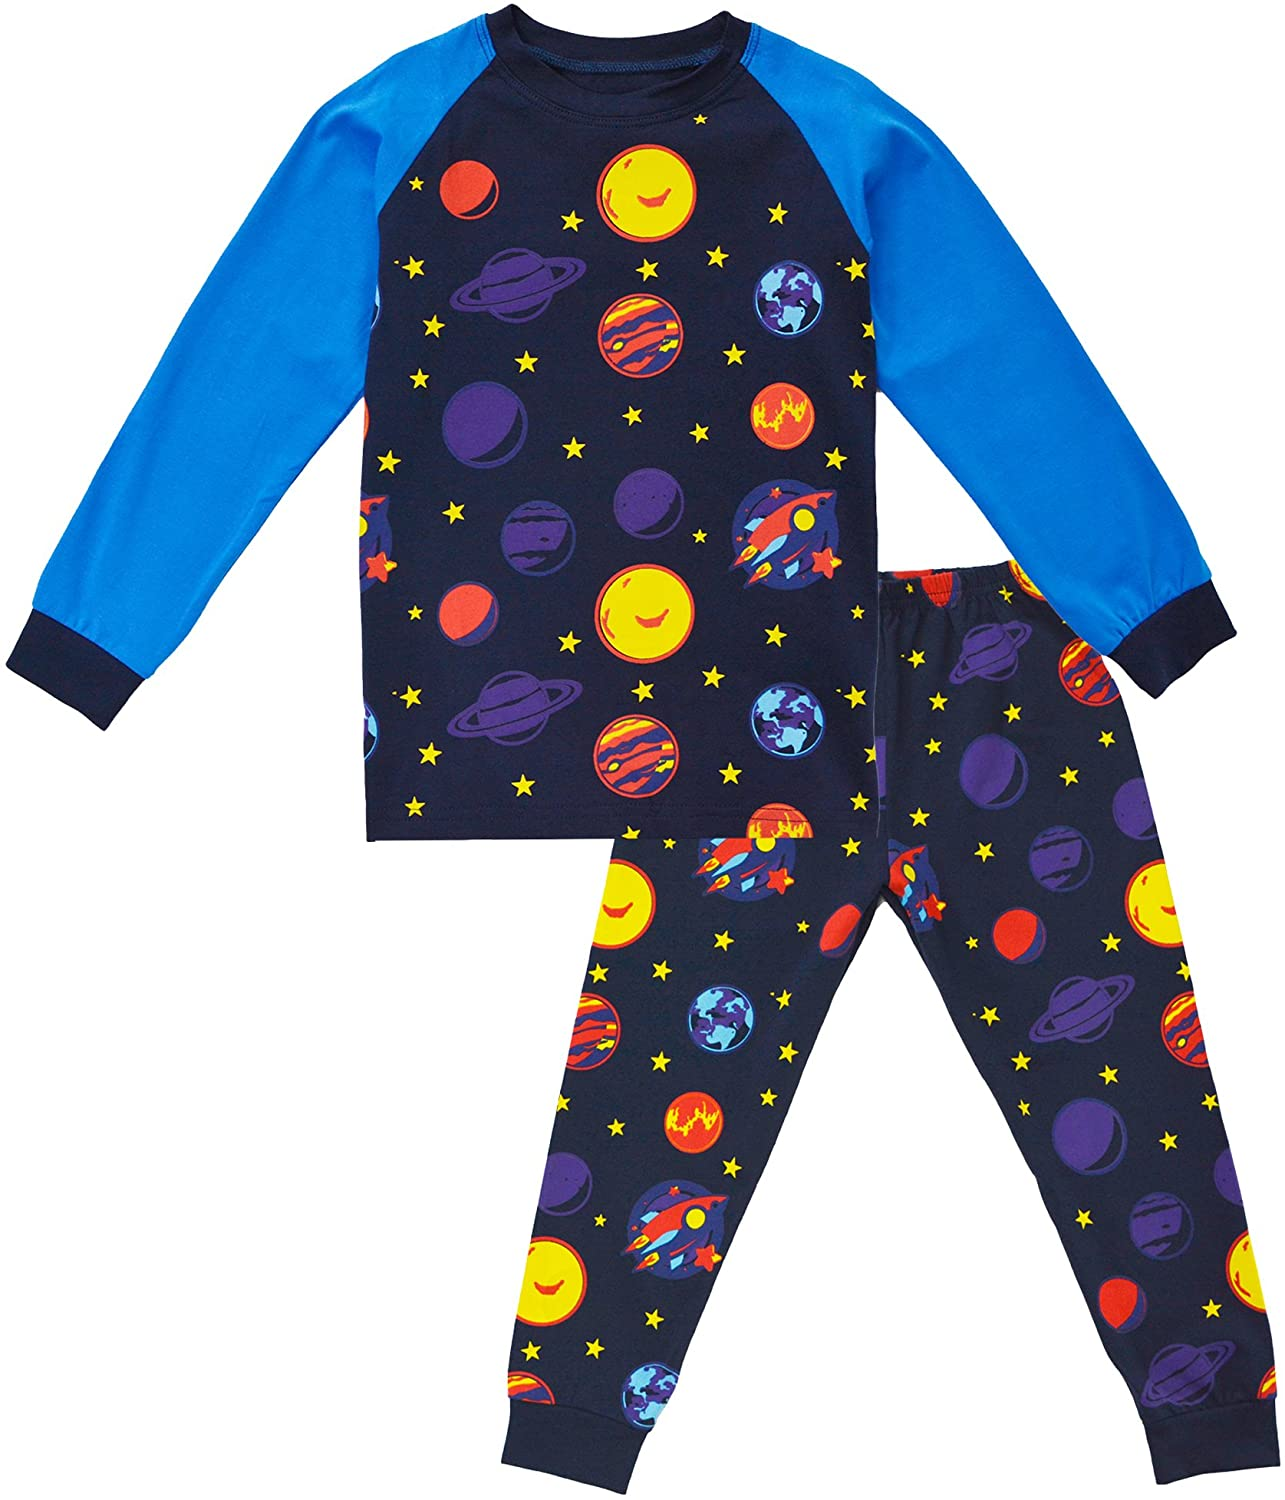 KISBINI Toddler Boys' Cartoon Cotton Pj Pjs Pajama Sets